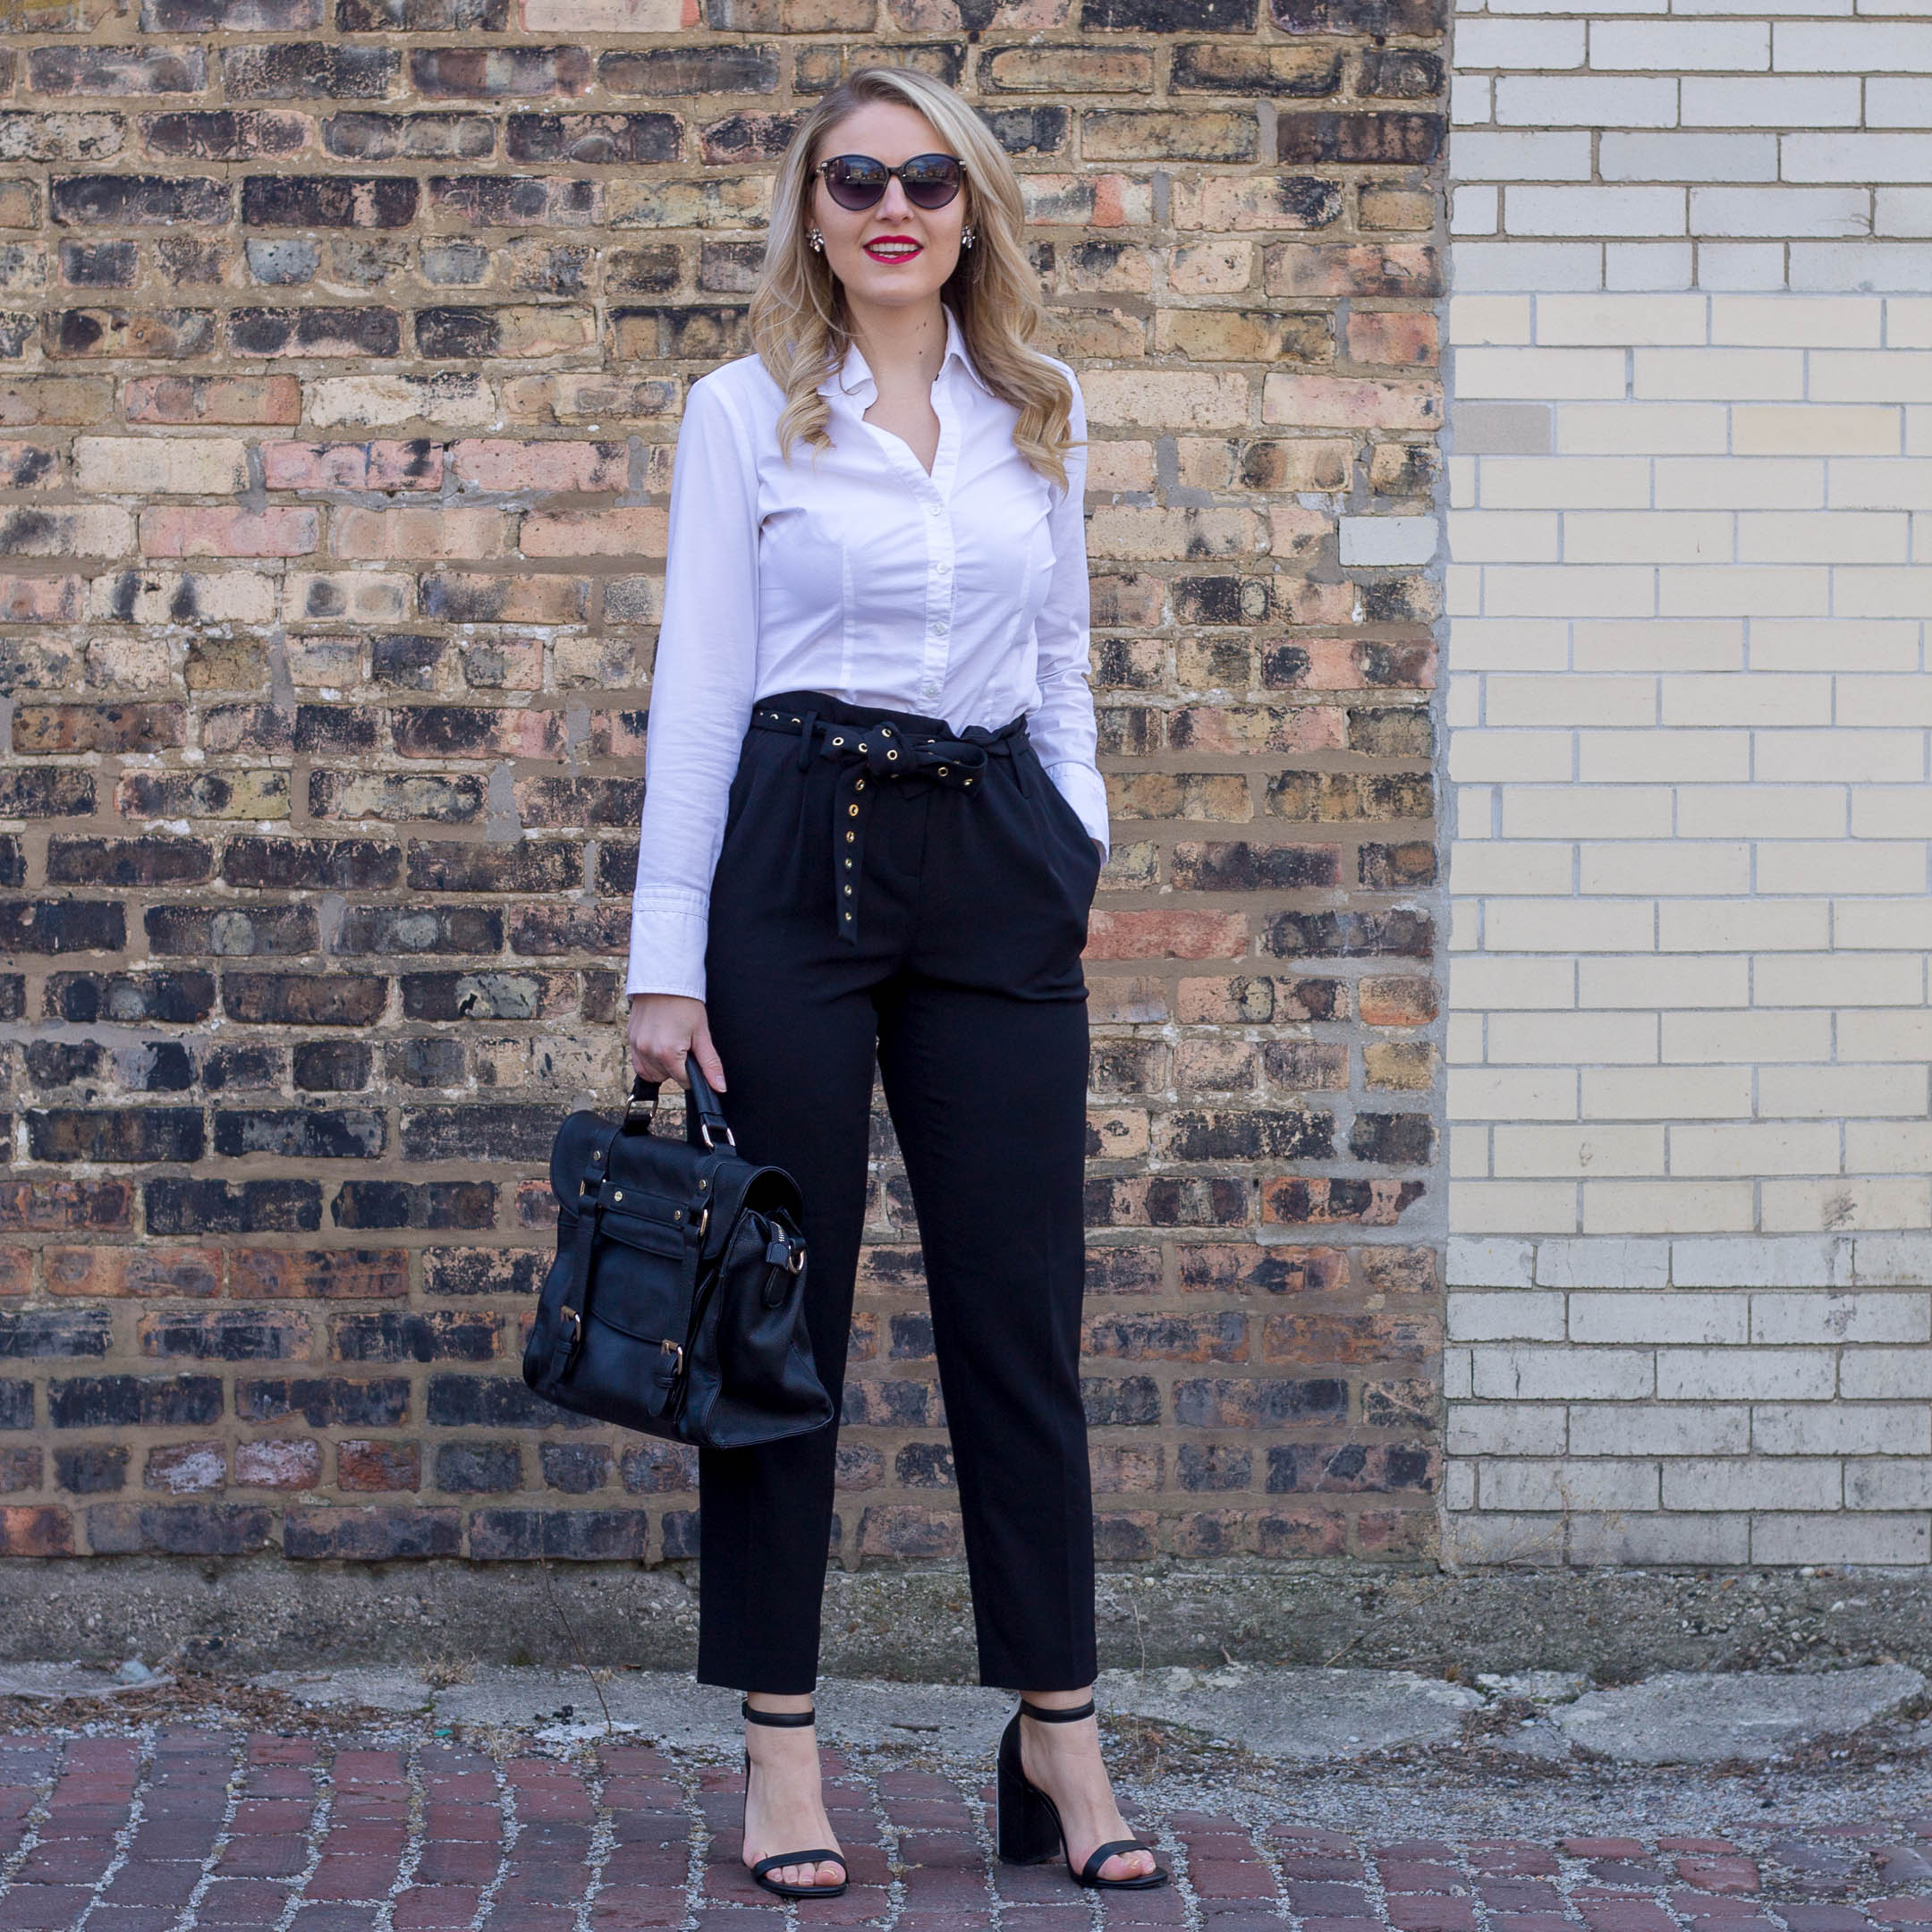 A simple black and white outfit for the corporate workplace featuring the Calvin Kelin cropped pant with studded belt